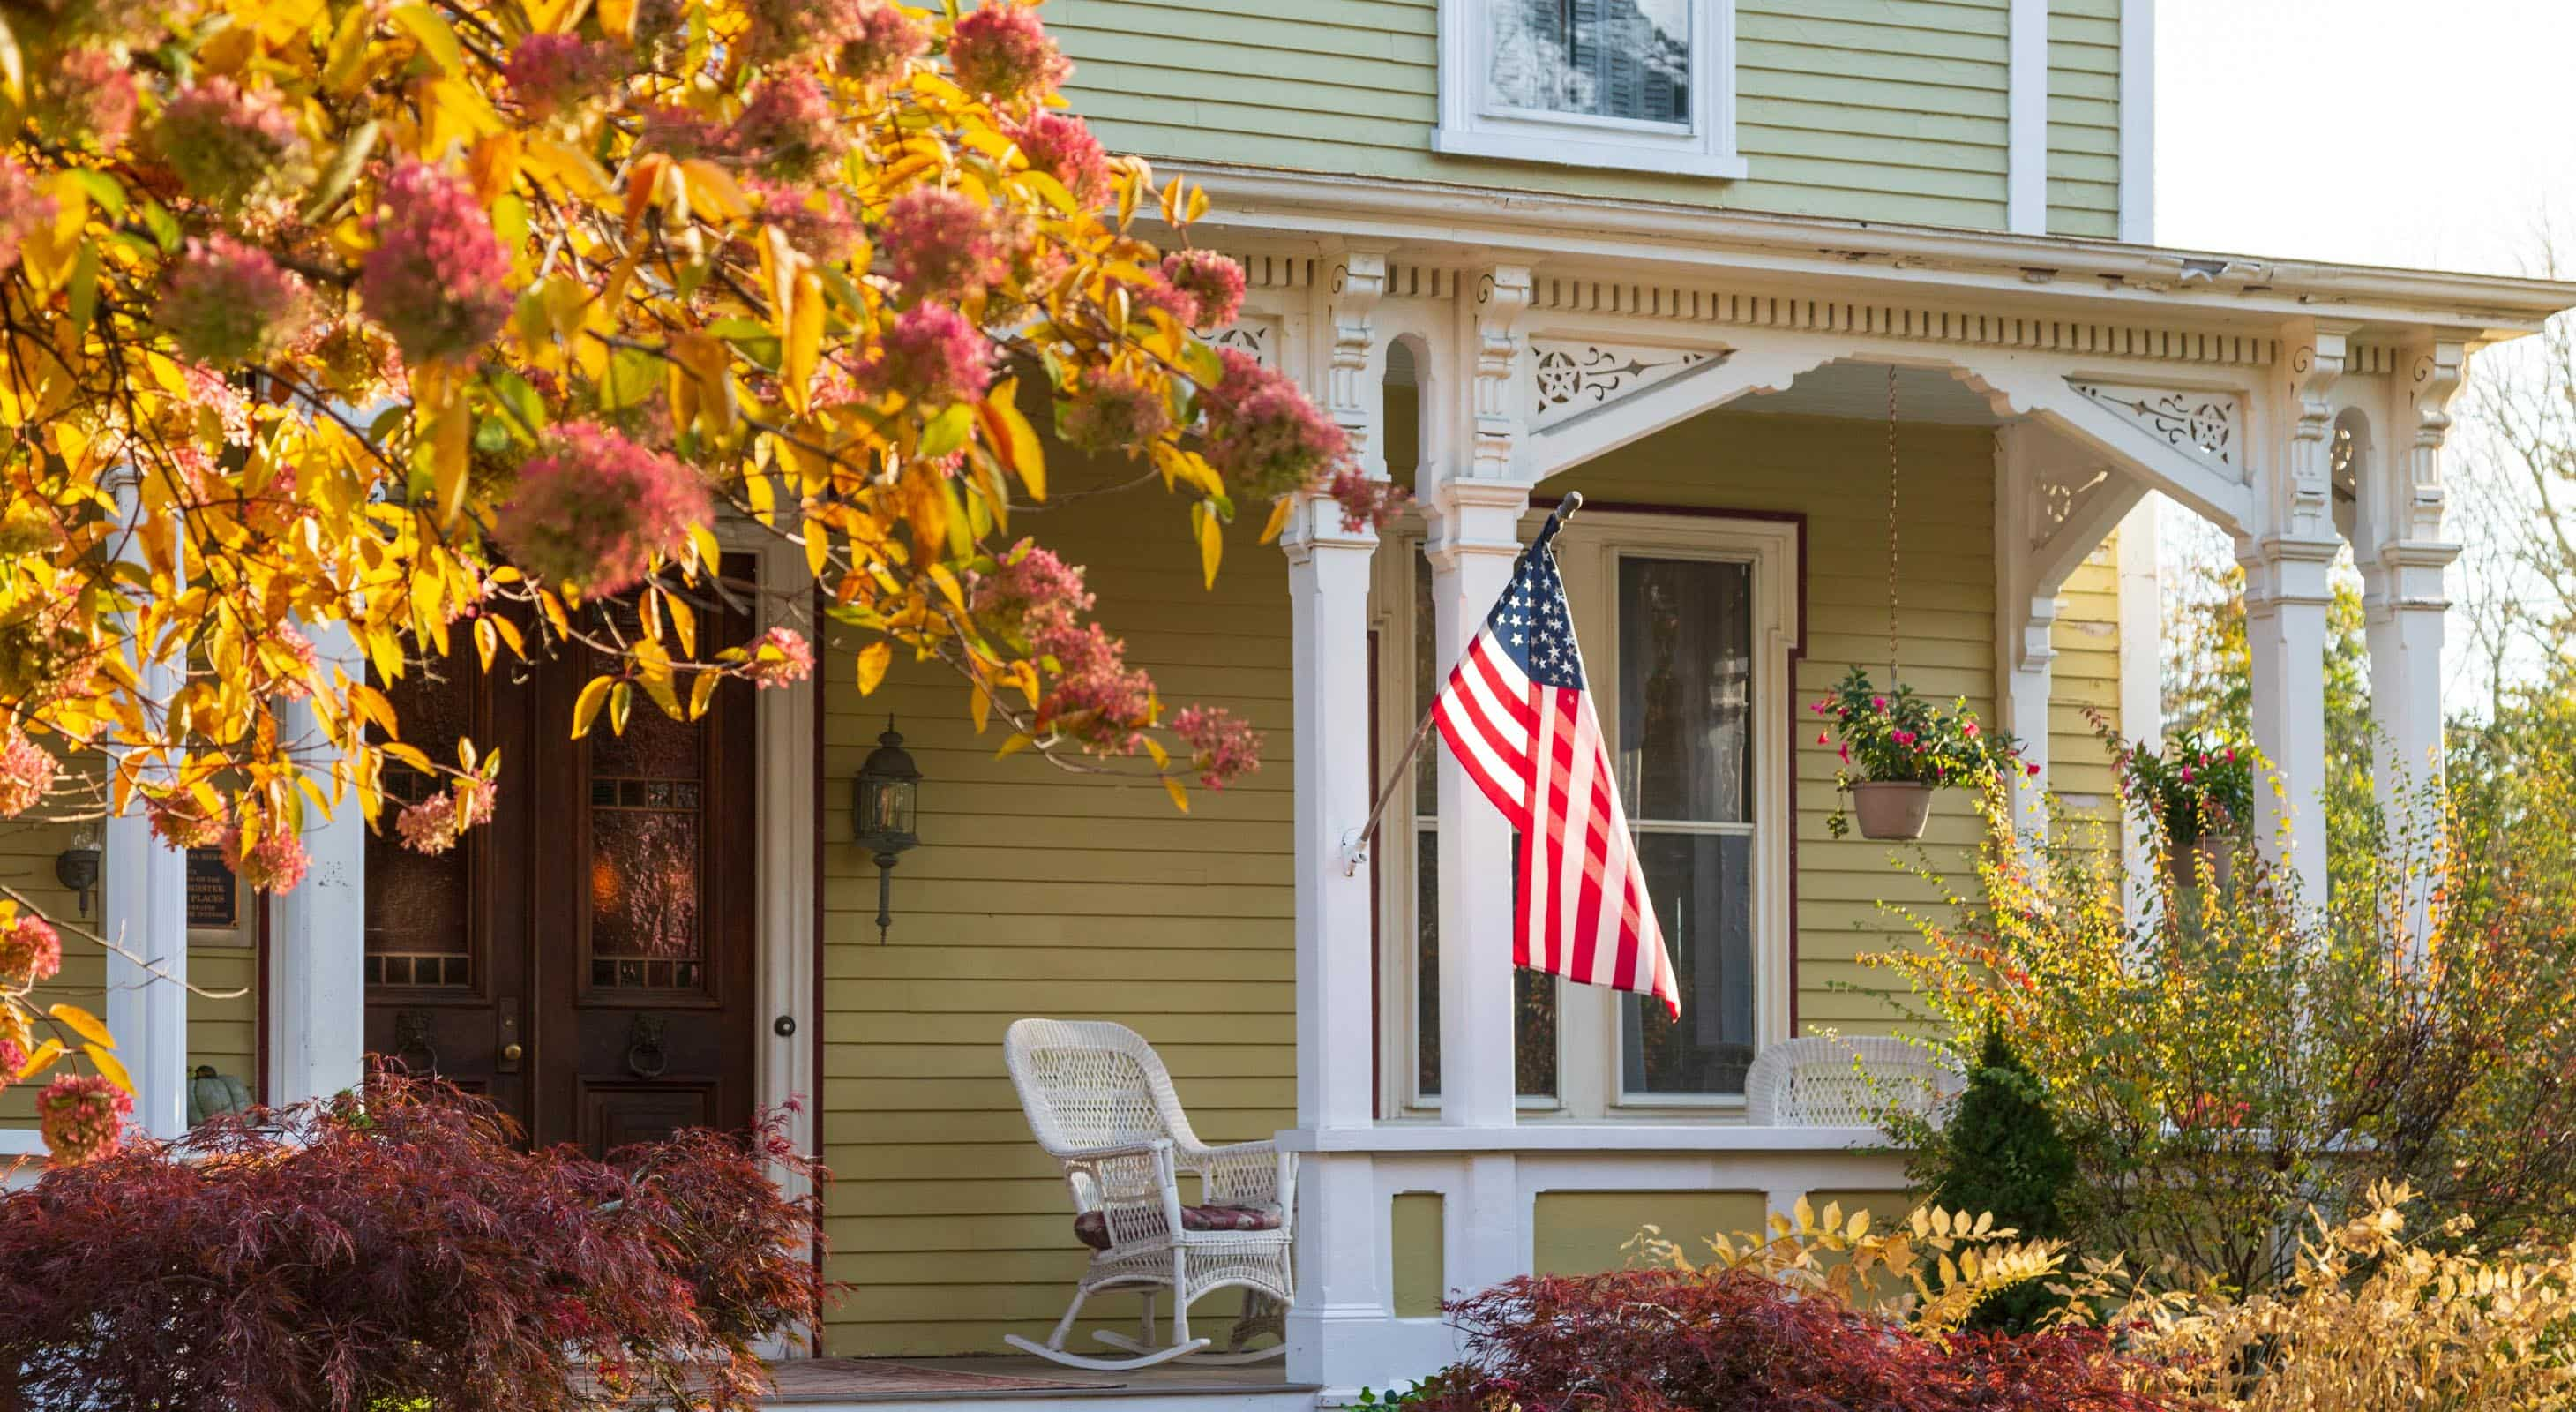 Captain Nickels Inn front porch with an American Flag posted in the front